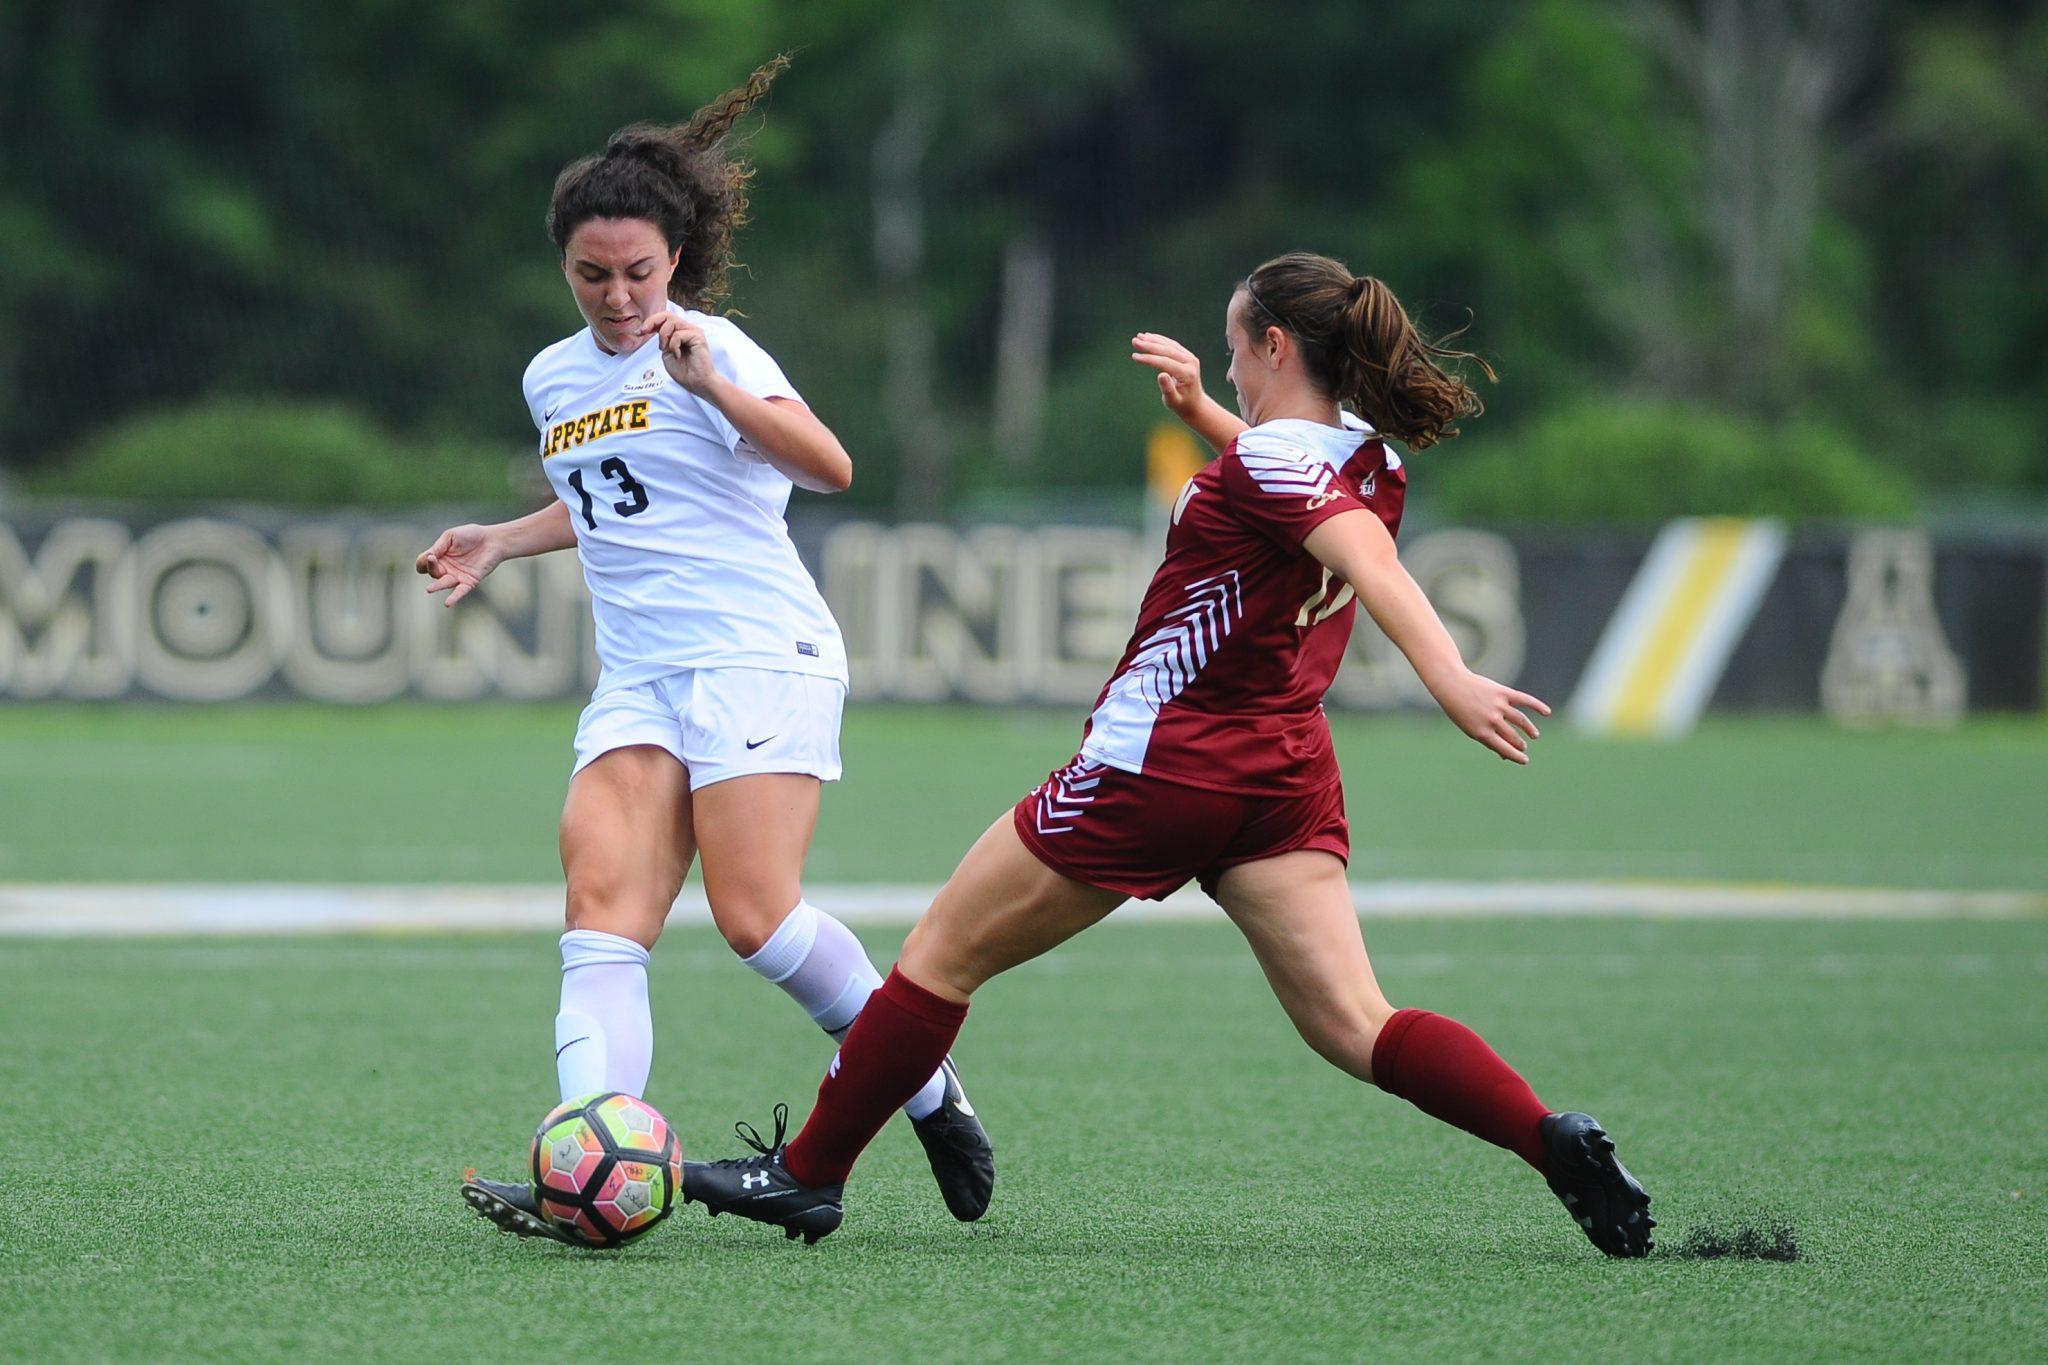 Appalachian State women's soccer takes on Elon in a preseason exhibition match at the Ted Mackorell Soccer Complex on Saturday, August 13, 2016 in Boone, North Carolina. Photo Courtesy: Tim Cowie